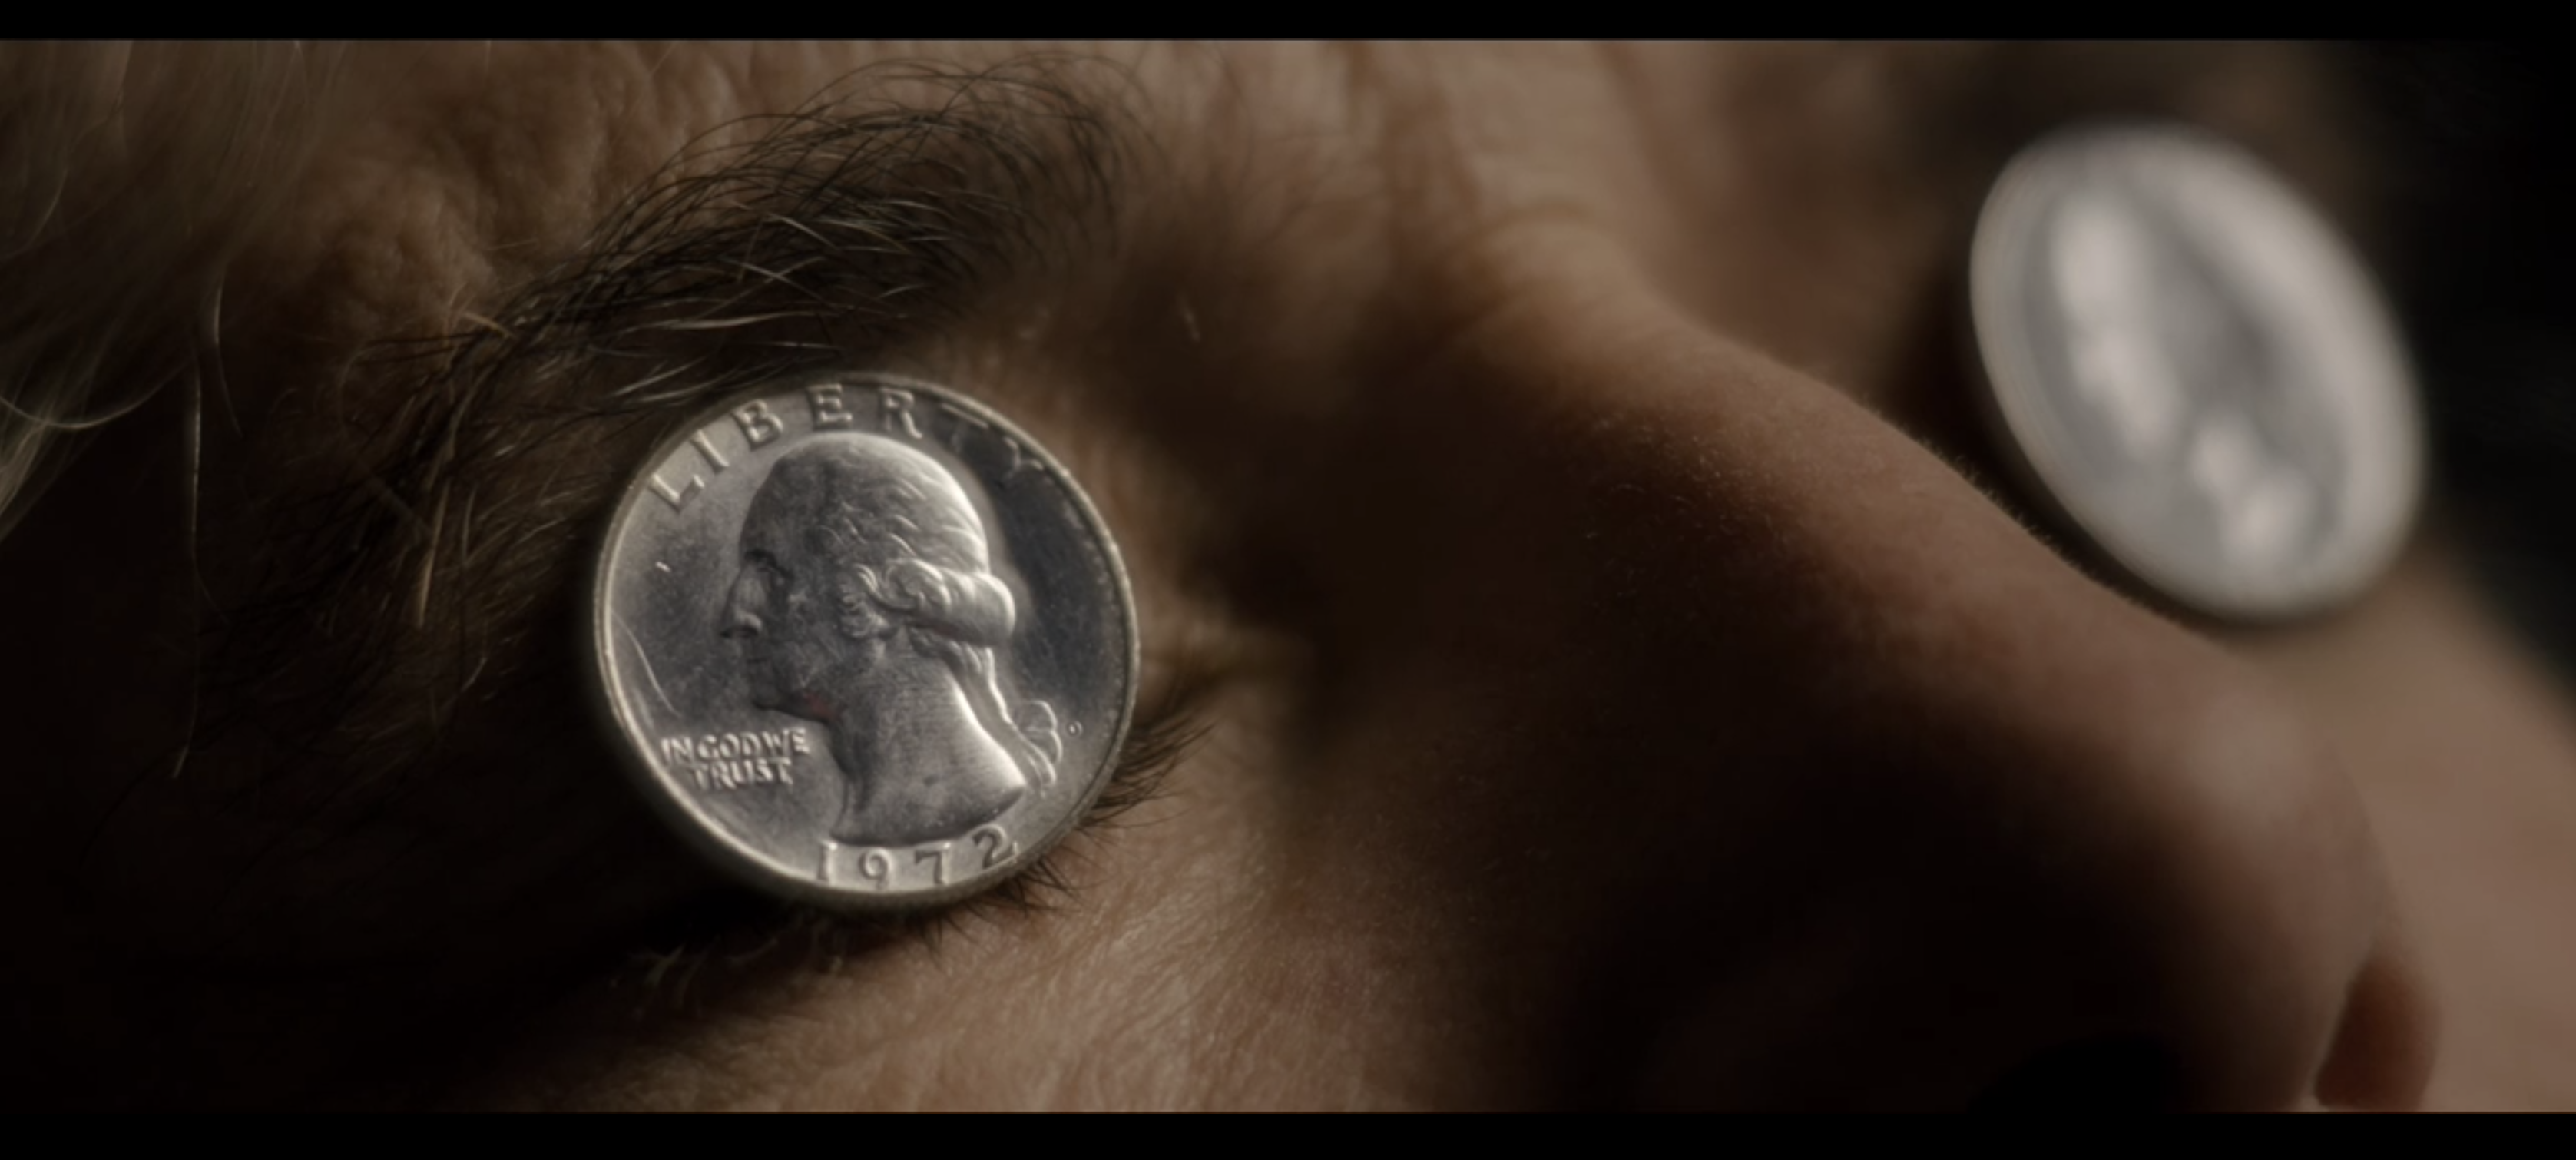 In Ready Player One 2018 The Two Quarters Placed Over James Halliday S Eyes Are From 1972 The Birth Year Of Halliday And Ready Player One Player One Players